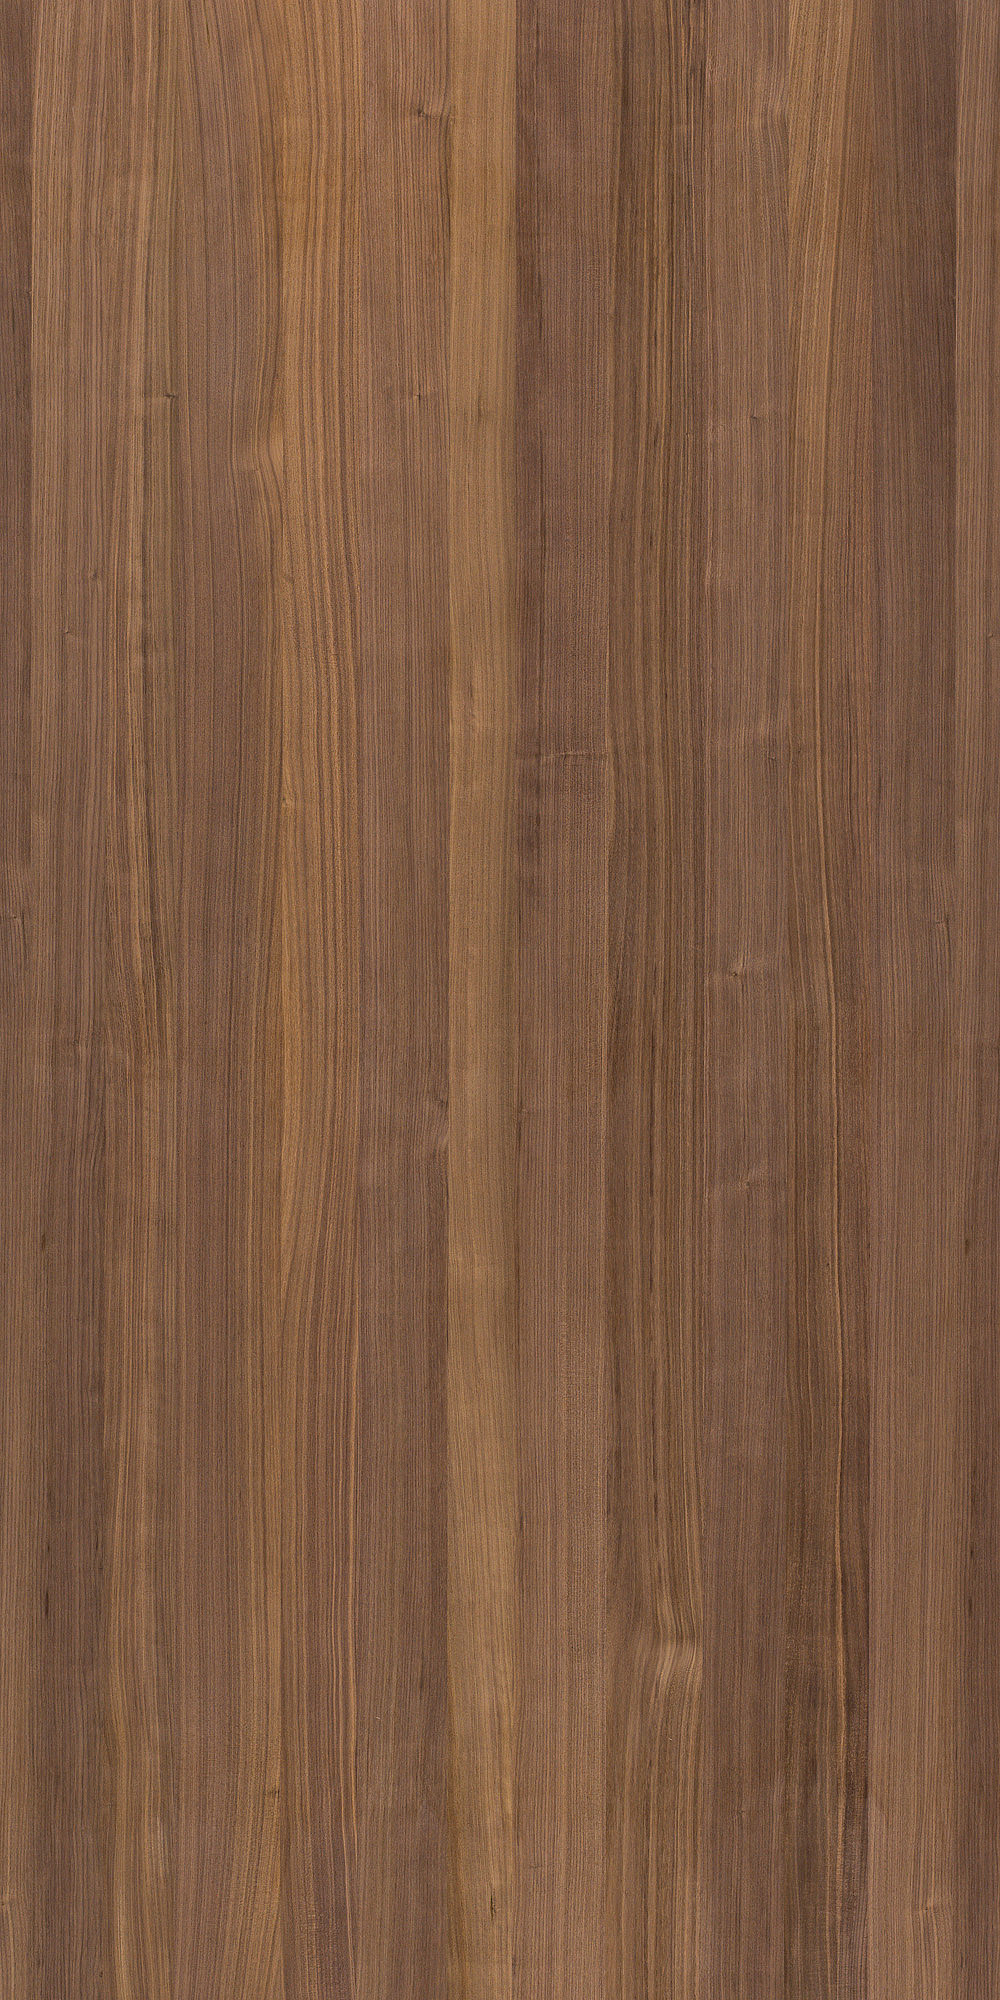 Wood specie: American Walnut<br />Slicing technique: QUARTER<br />Jointing technique: MIX-MATCHED